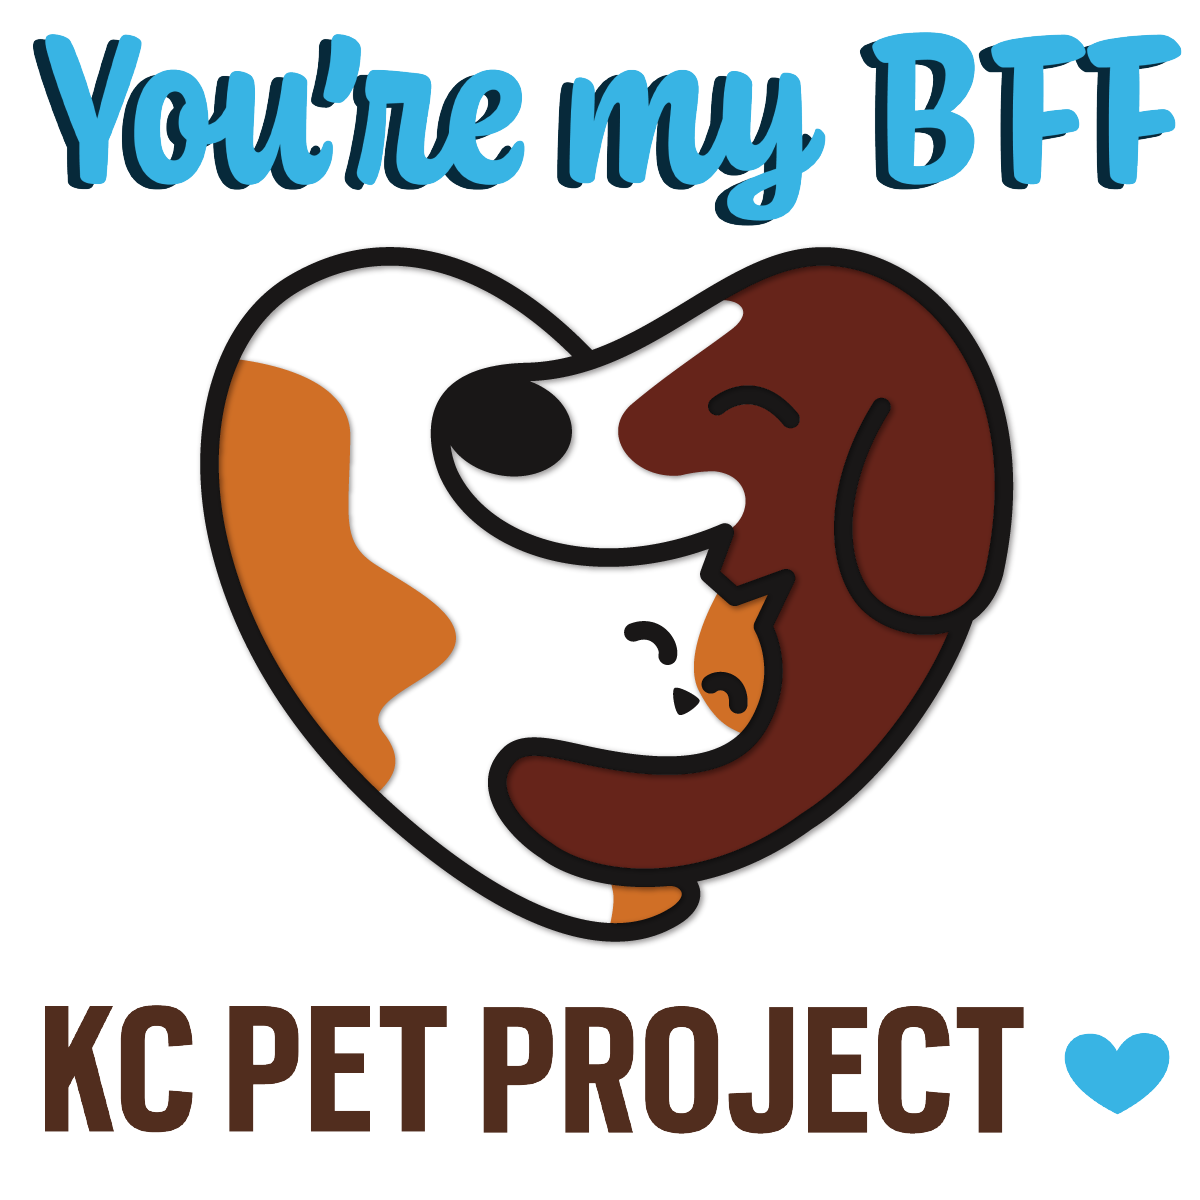 thekcpetproject.png